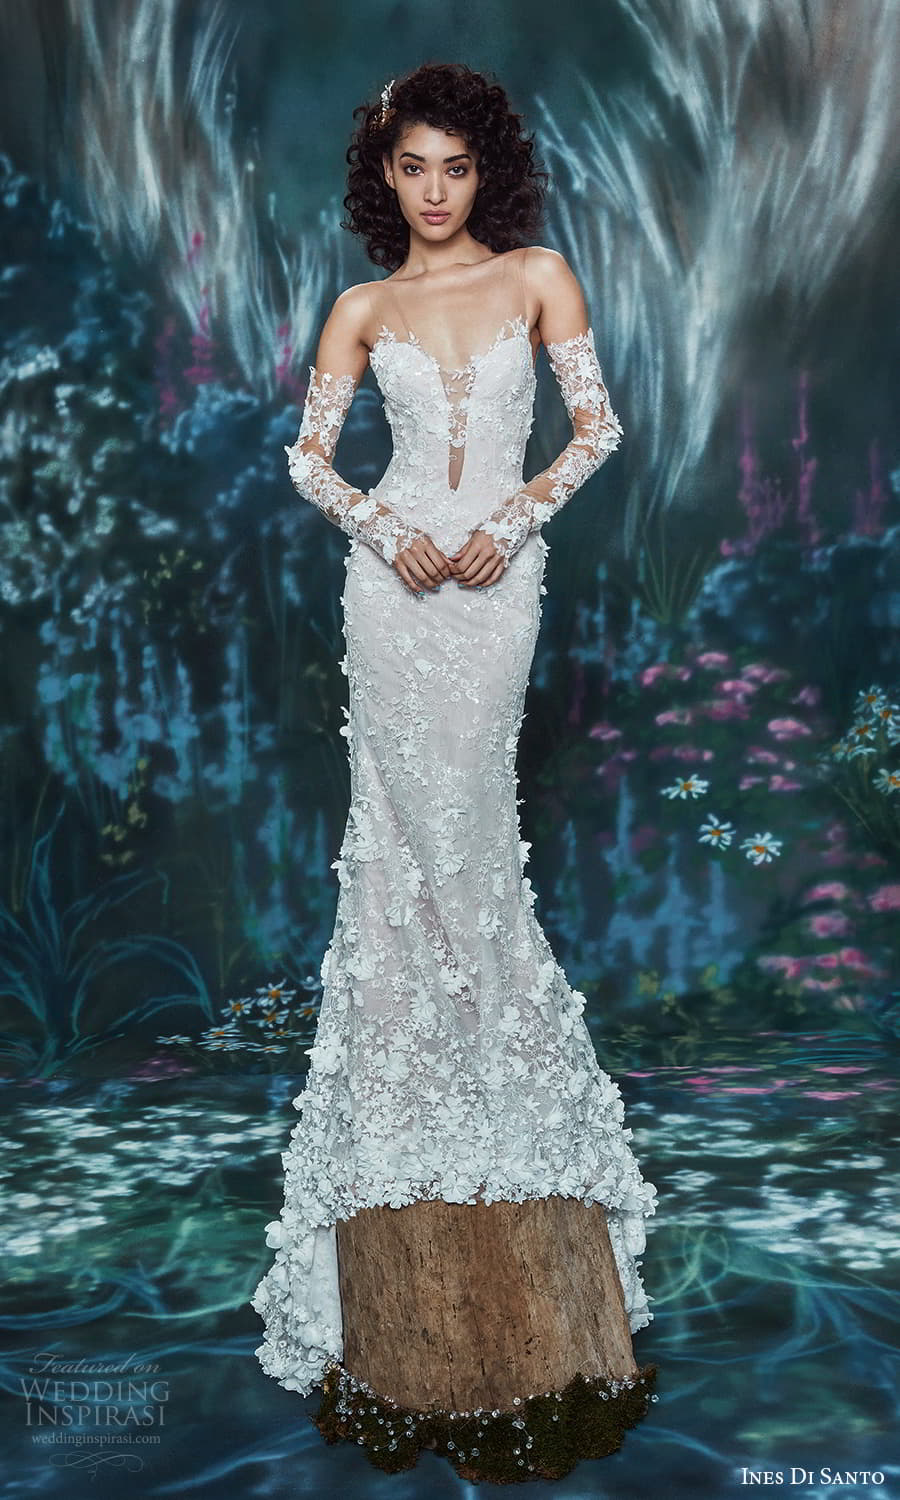 ines di santo spring 2022 bridal detached lace sleeves sleeveless sheer straps plunging v neckline fully embellished sheath wedding dress chapel train (9) mv